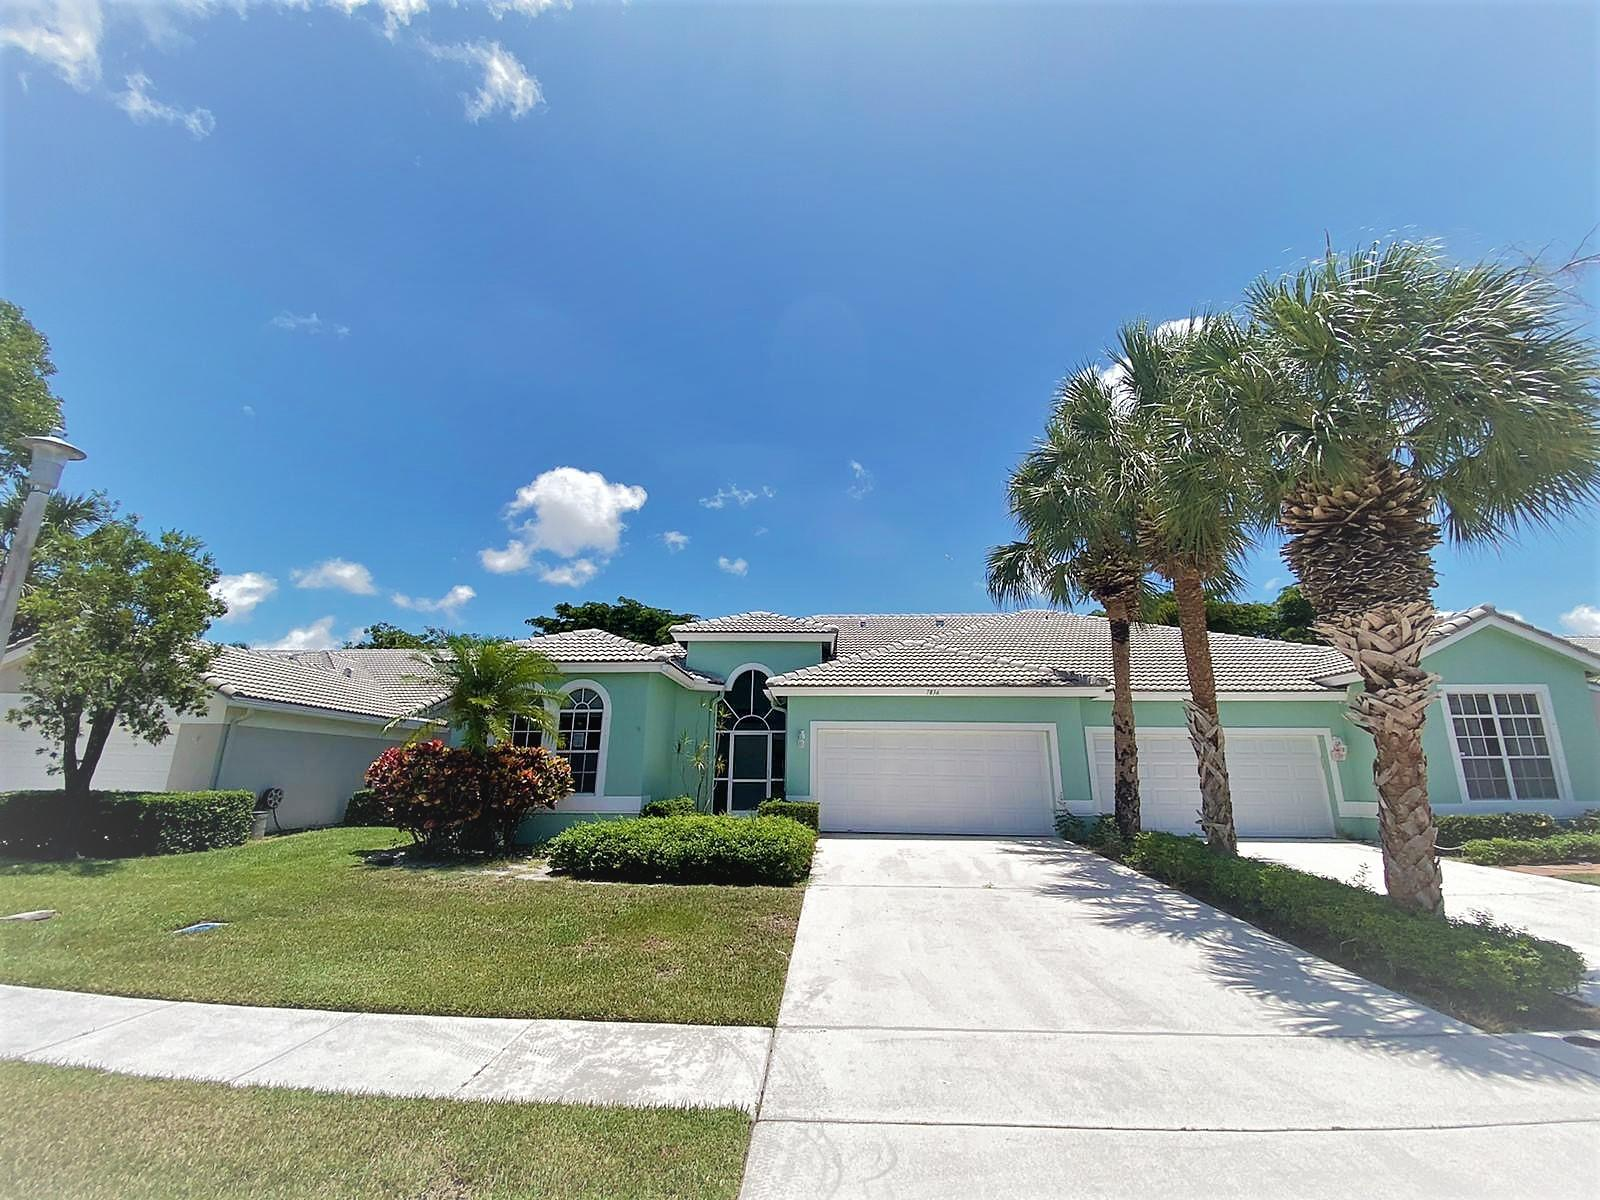 Home for sale in Brittany Lakes Boynton Beach Florida